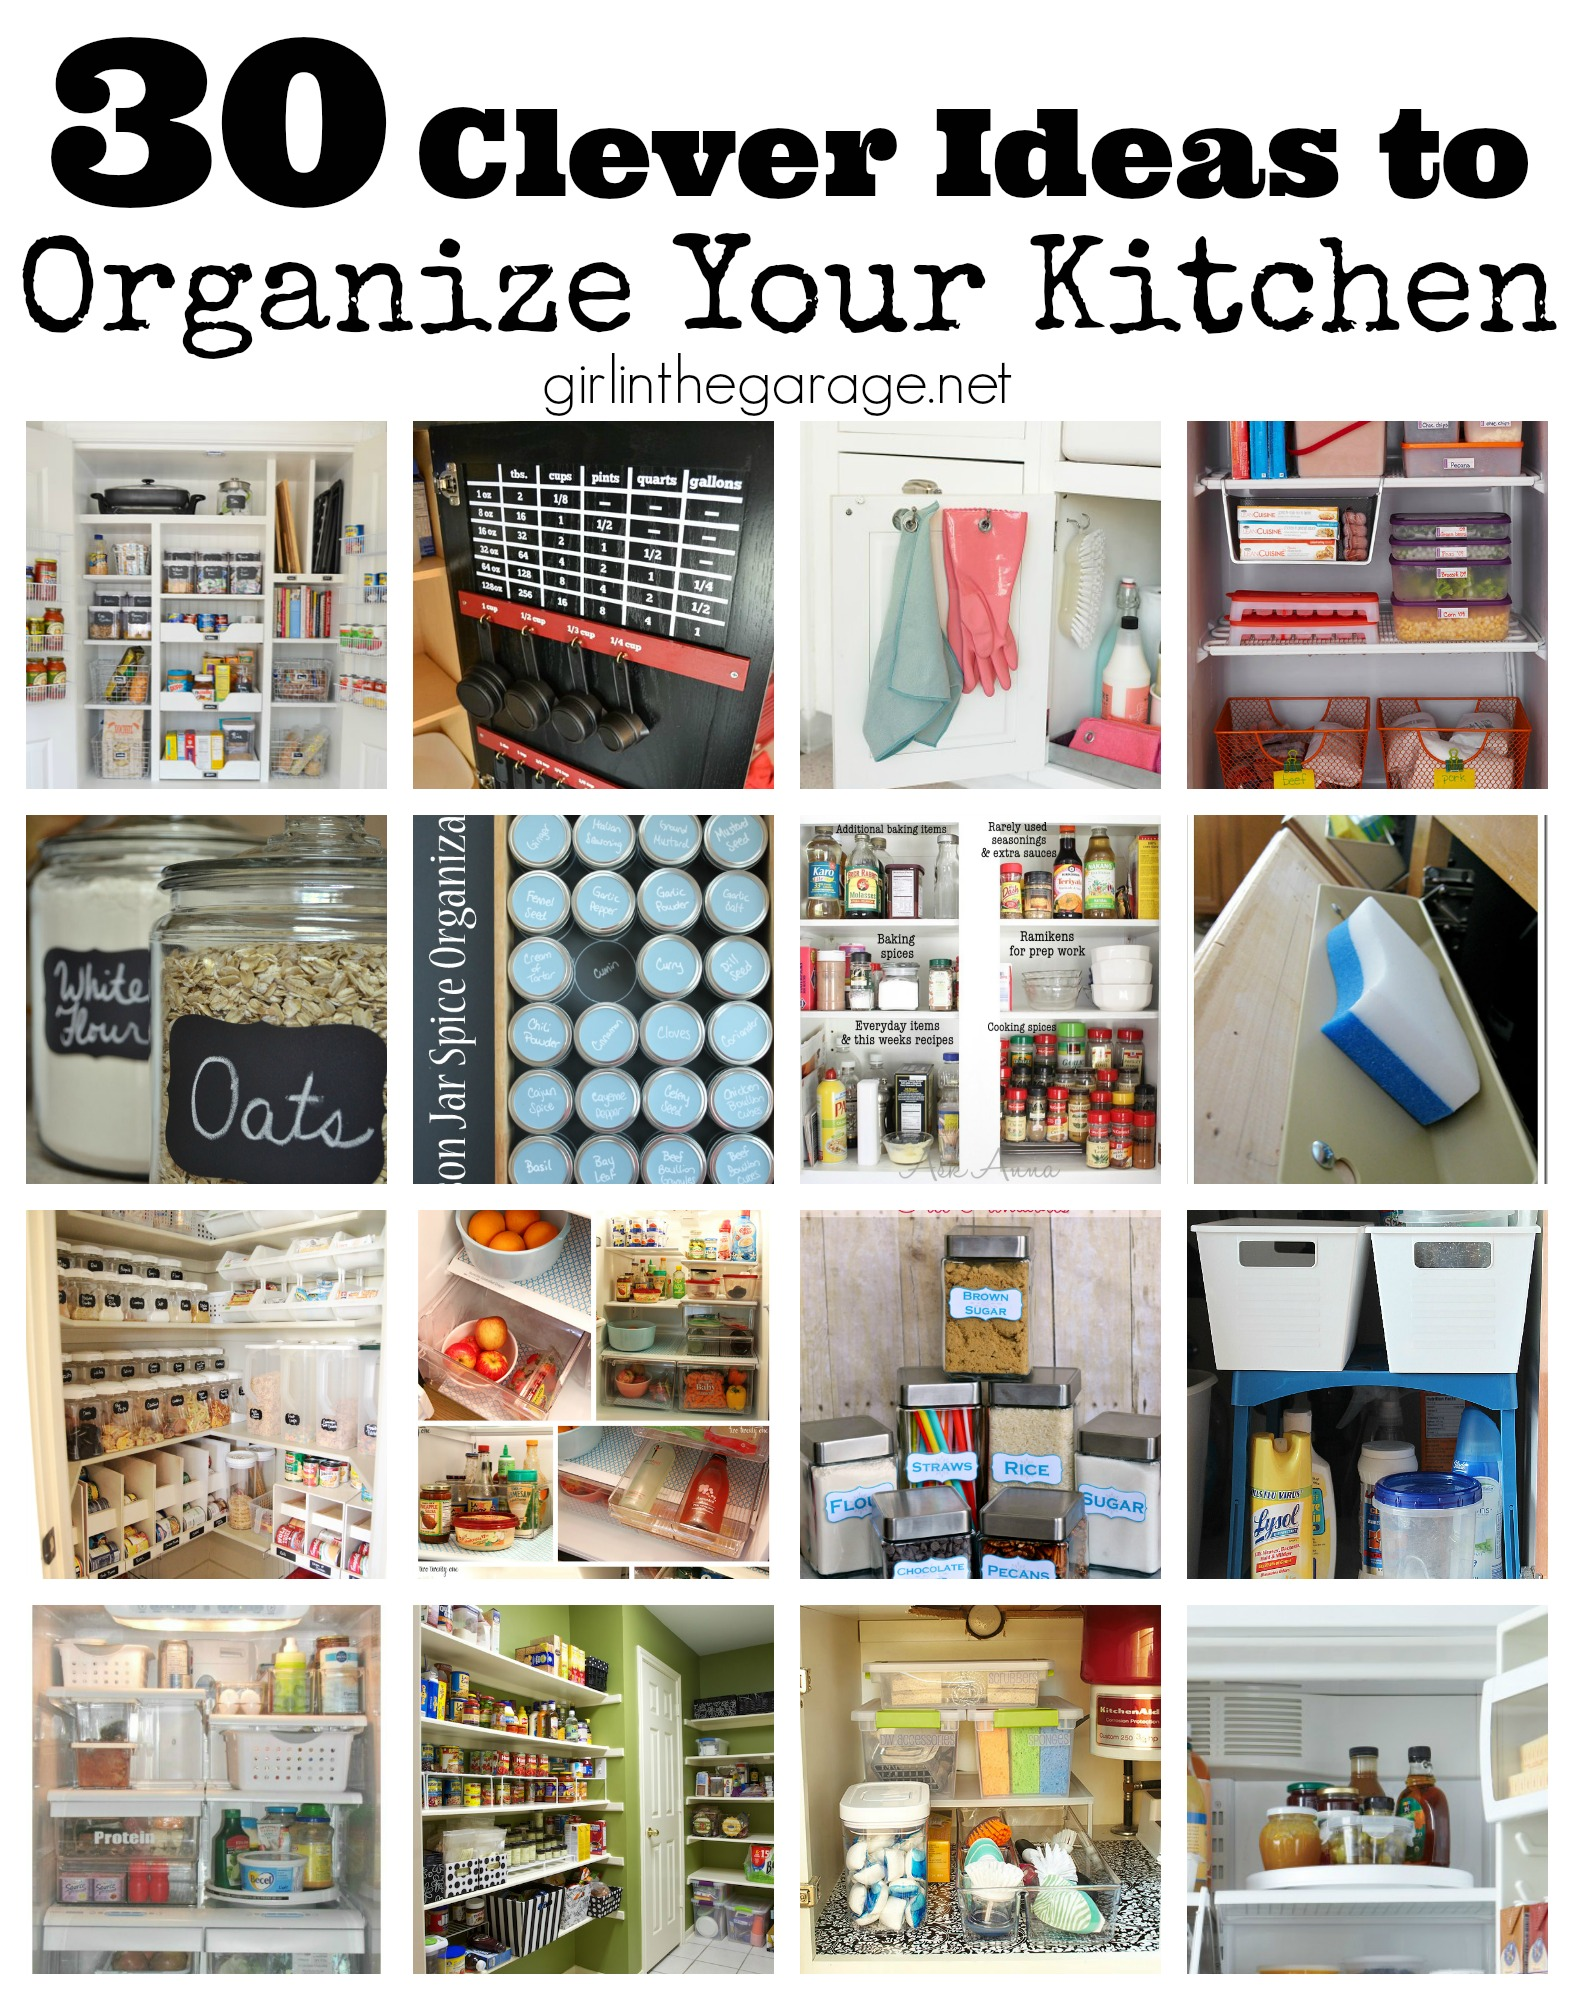 For Kitchen Organization 30 Clever Ideas To Organize Your Kitchen Girl In The Garage